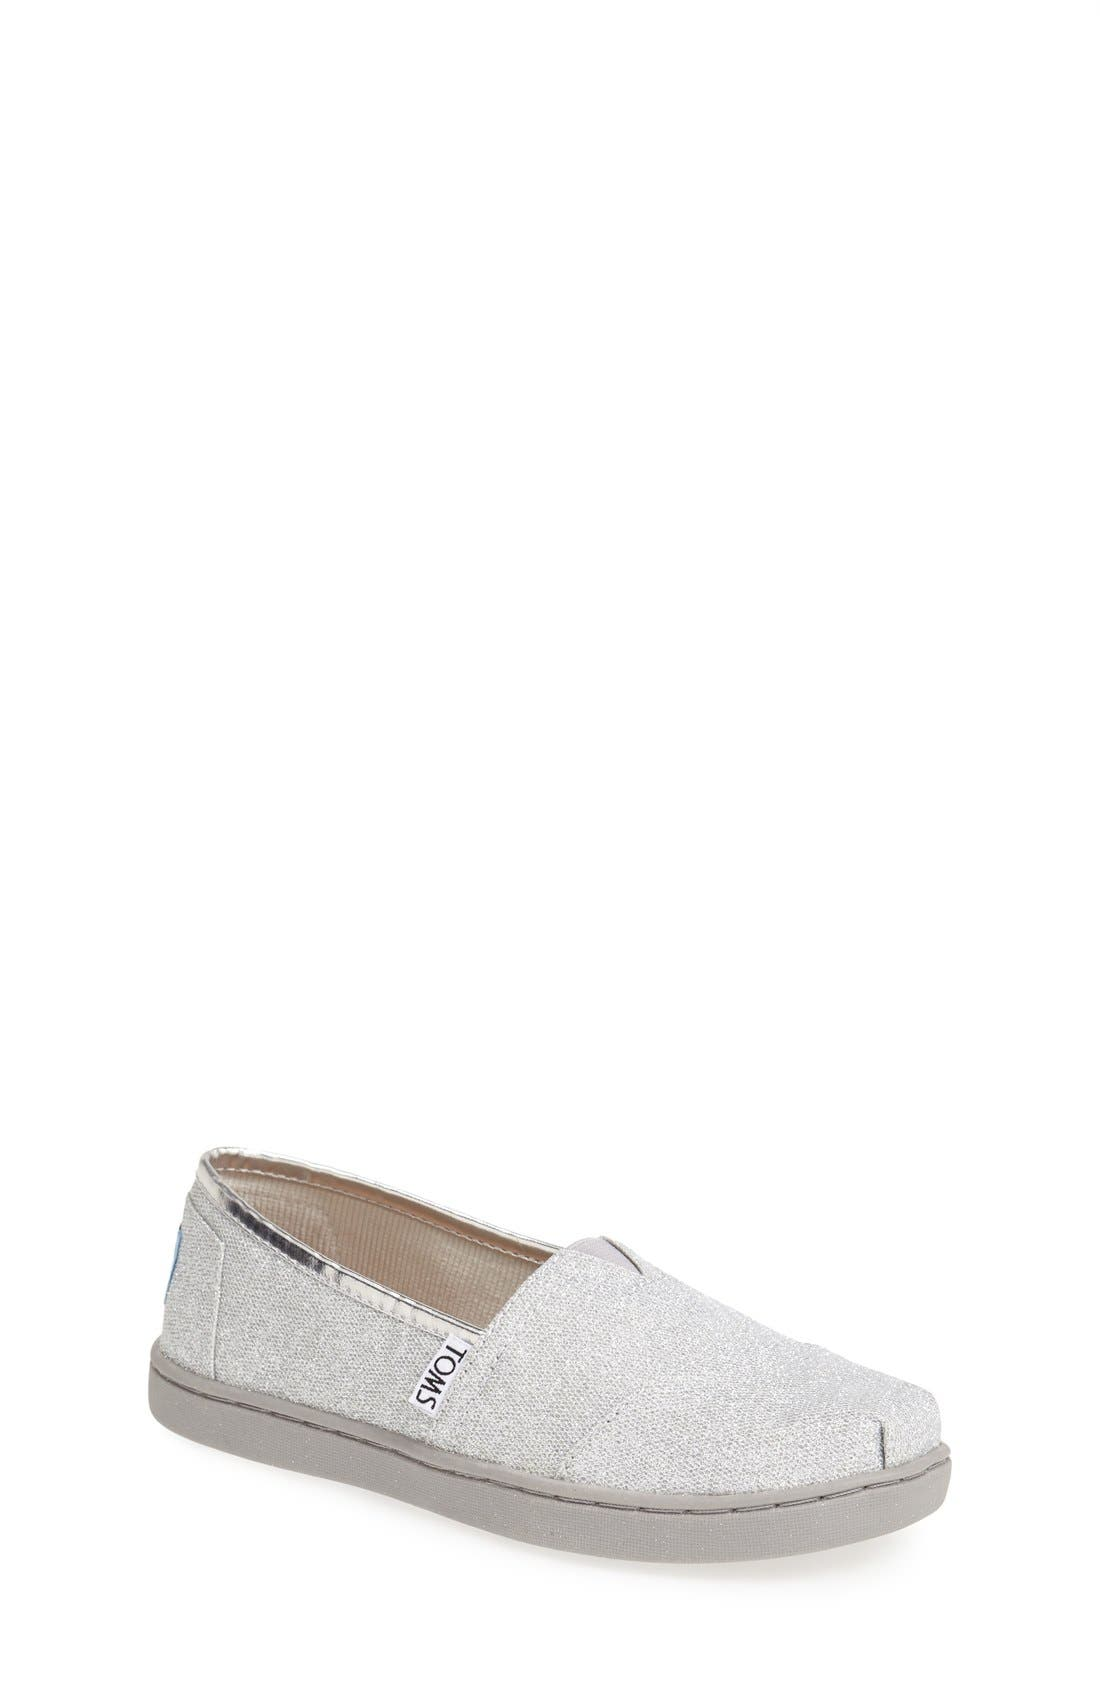 Alternate Image 1 Selected - TOMS 'Classic Youth - Glitter' Slip-On (Toddler, Little Kid & Big Kid)